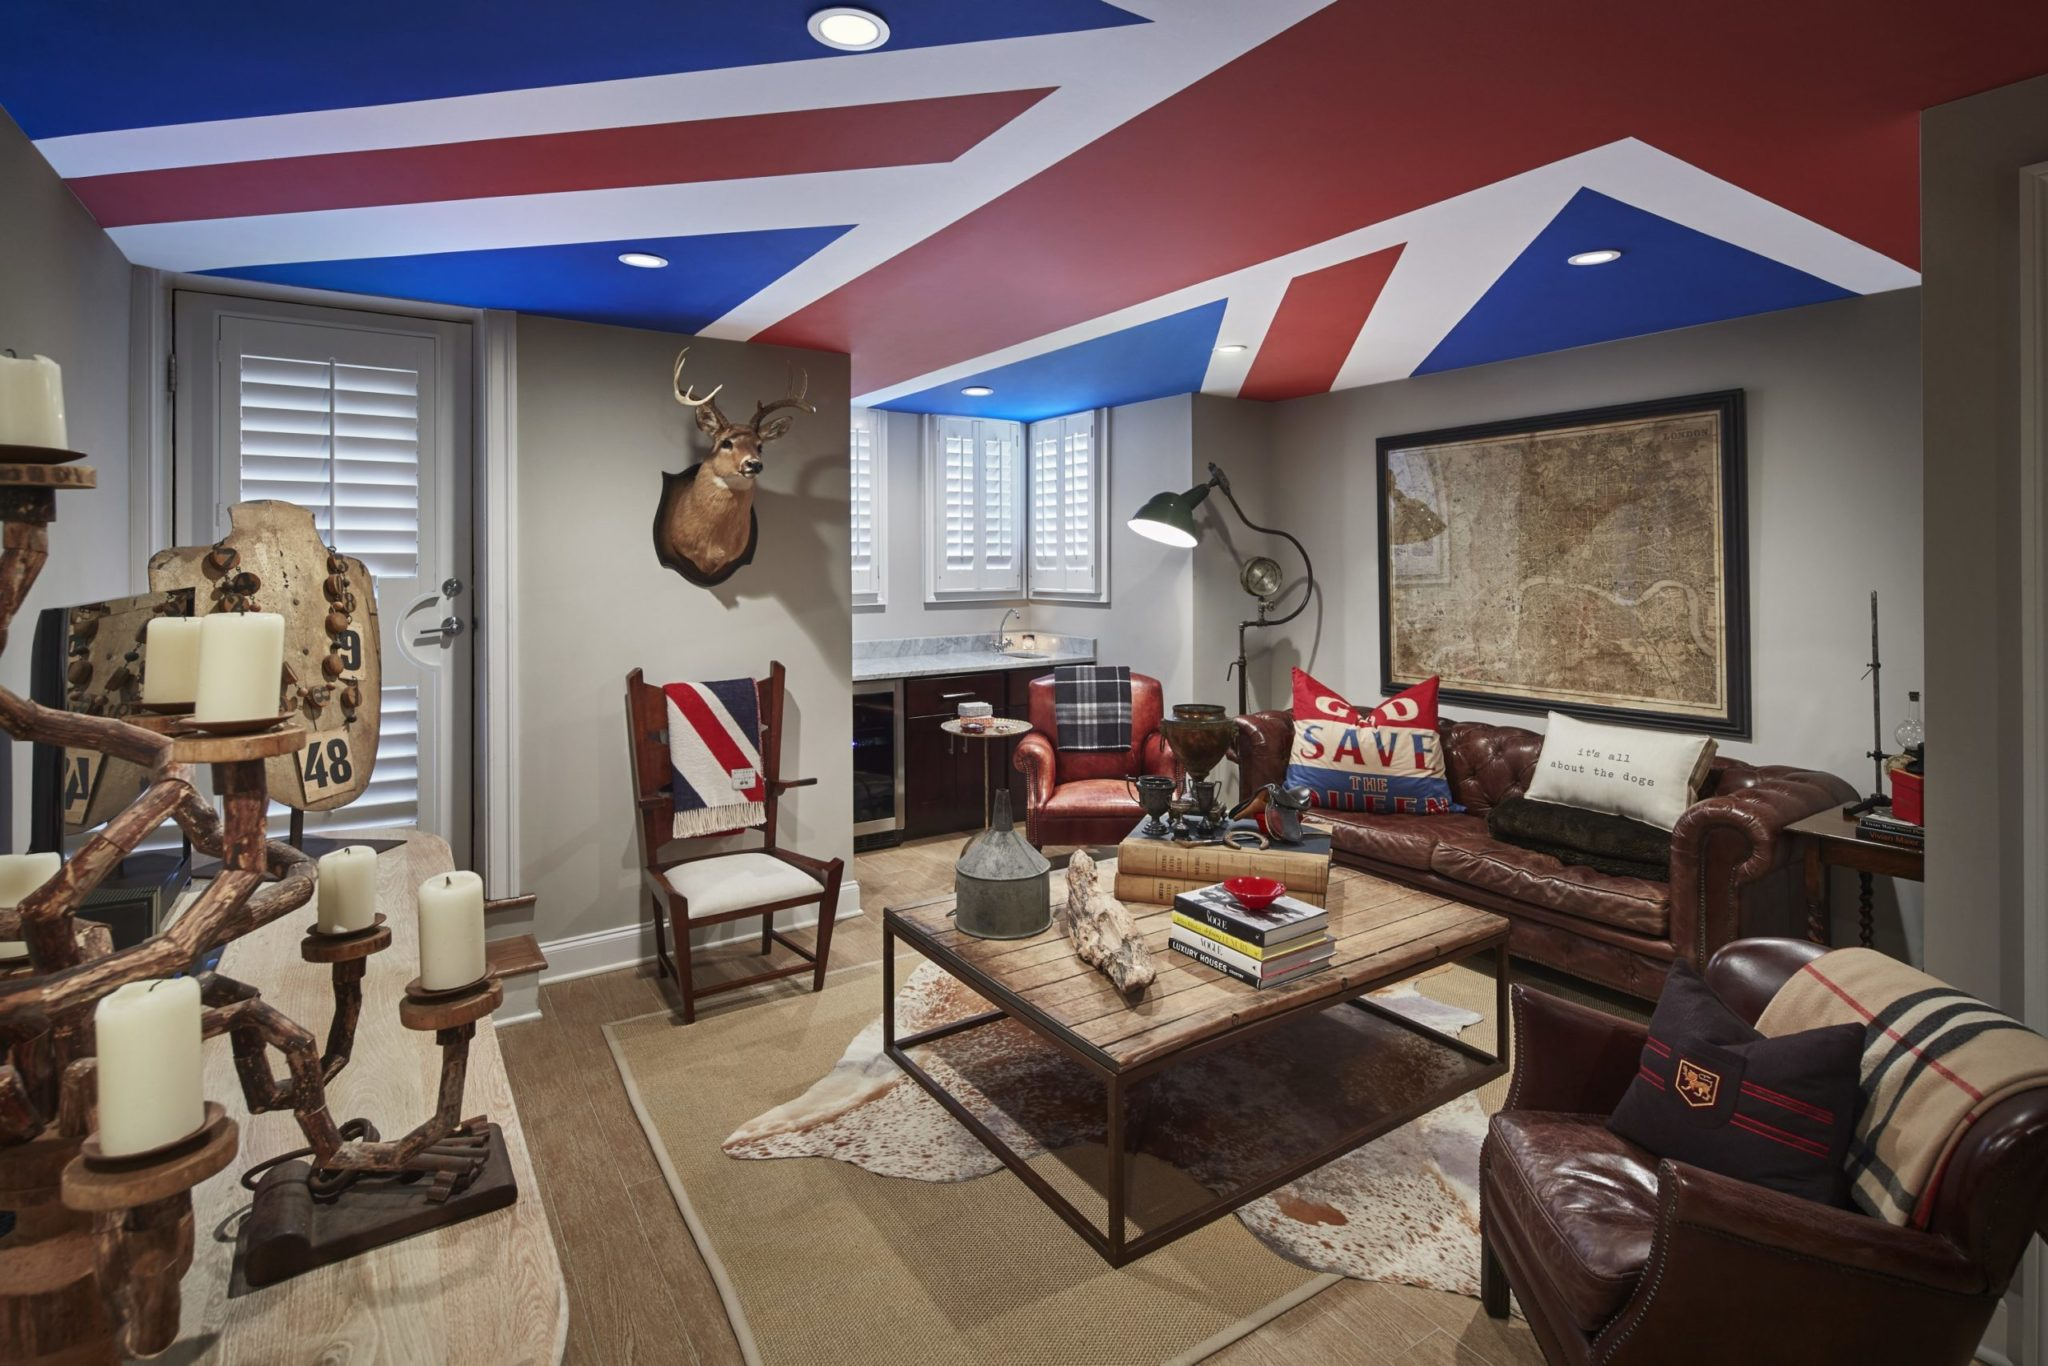 Look Inside My Home: A Quirky Bloomingdale Townhouse With a Union Jack Ceiling